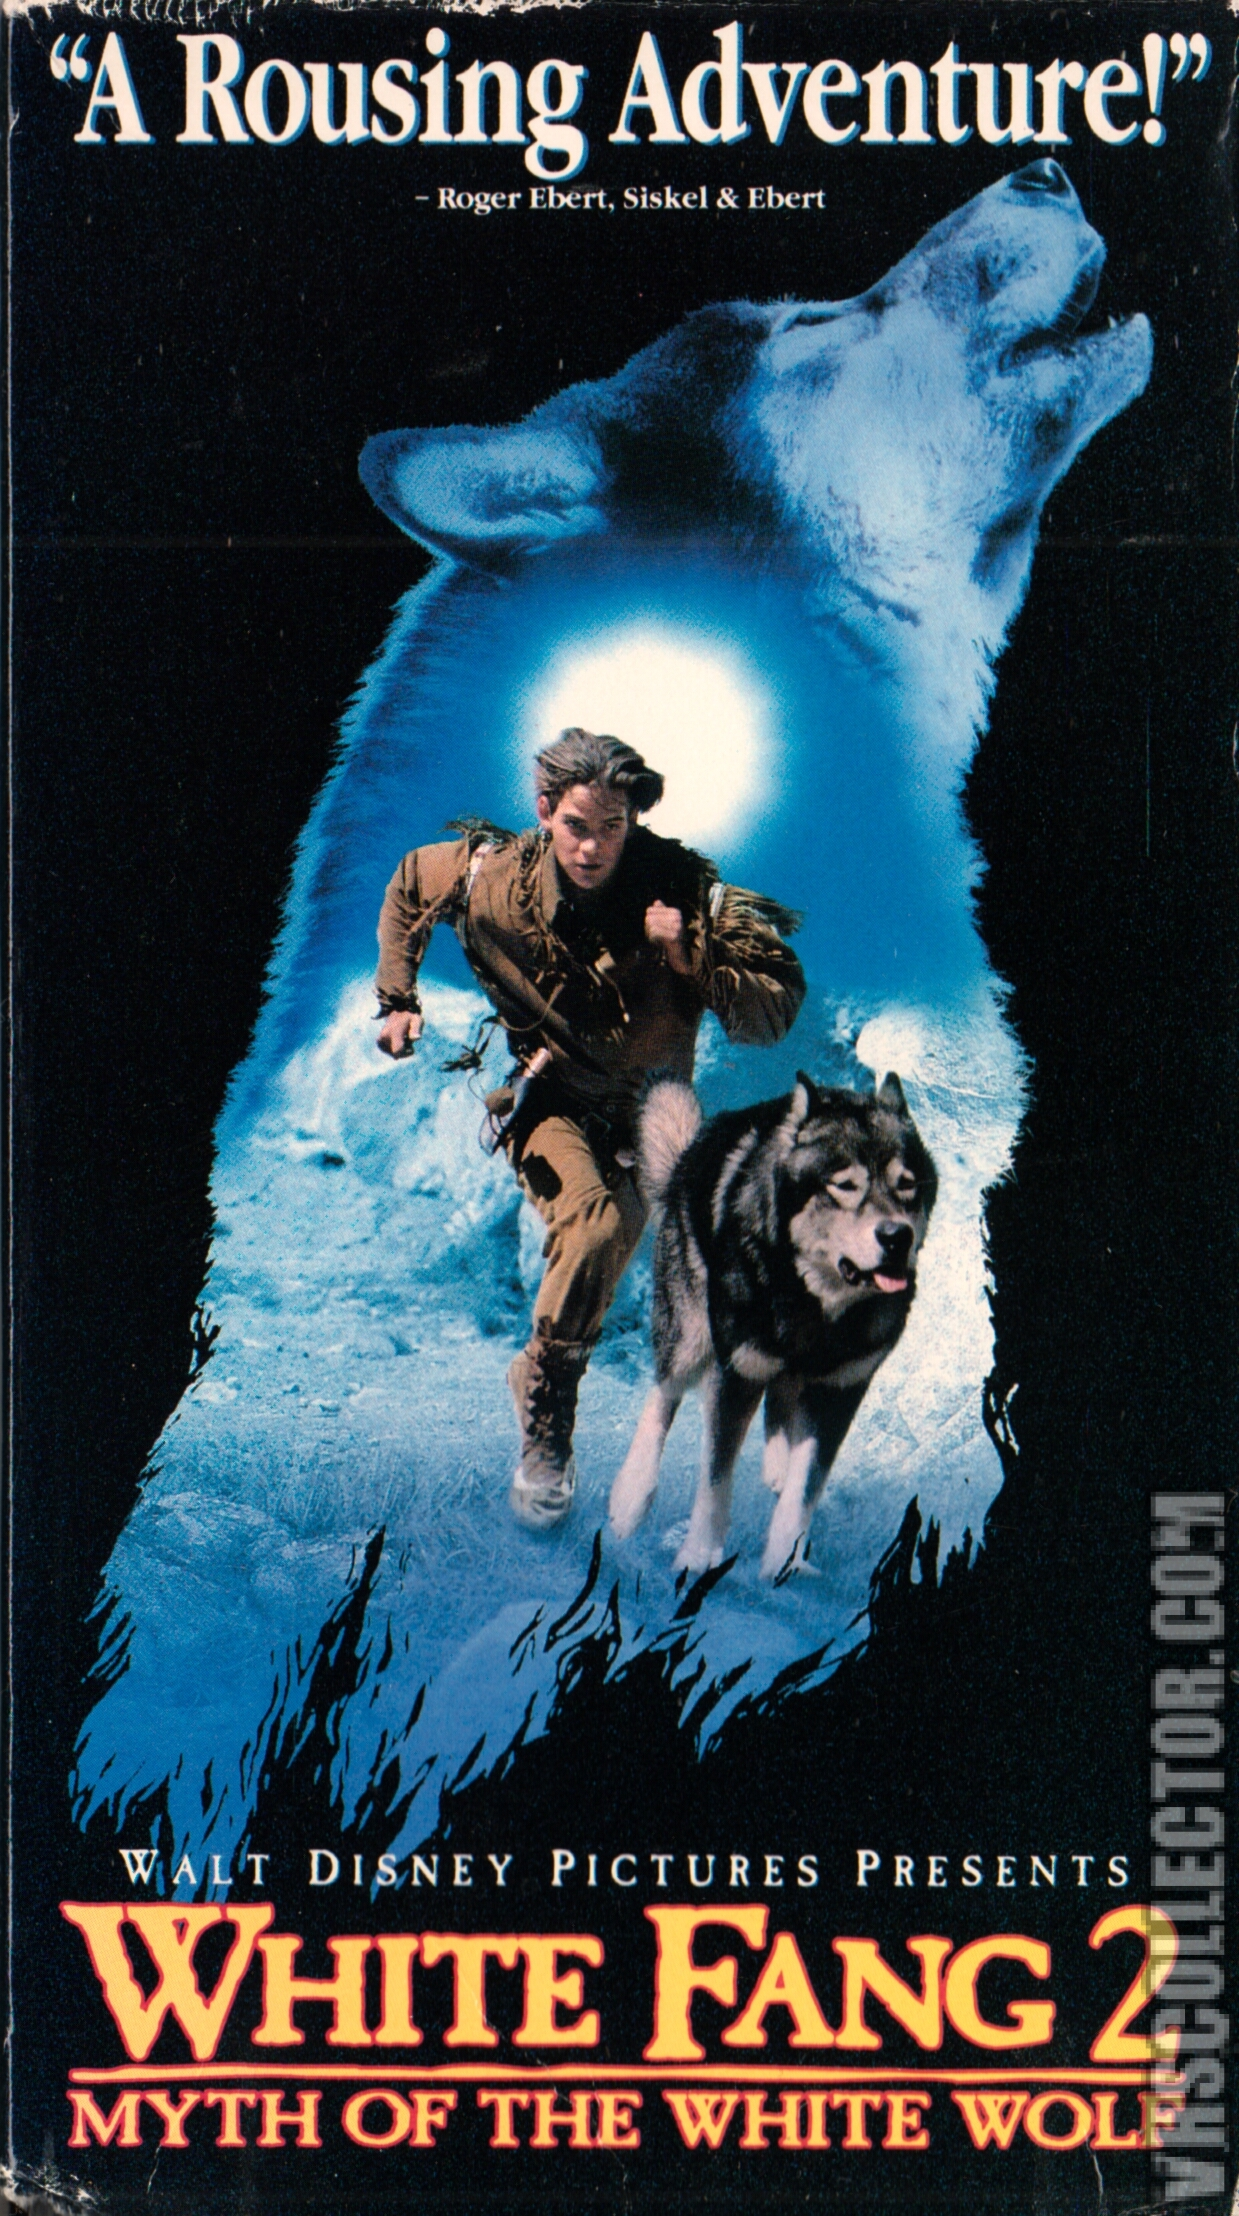 White Fang 2 Myth Of The White Wolf